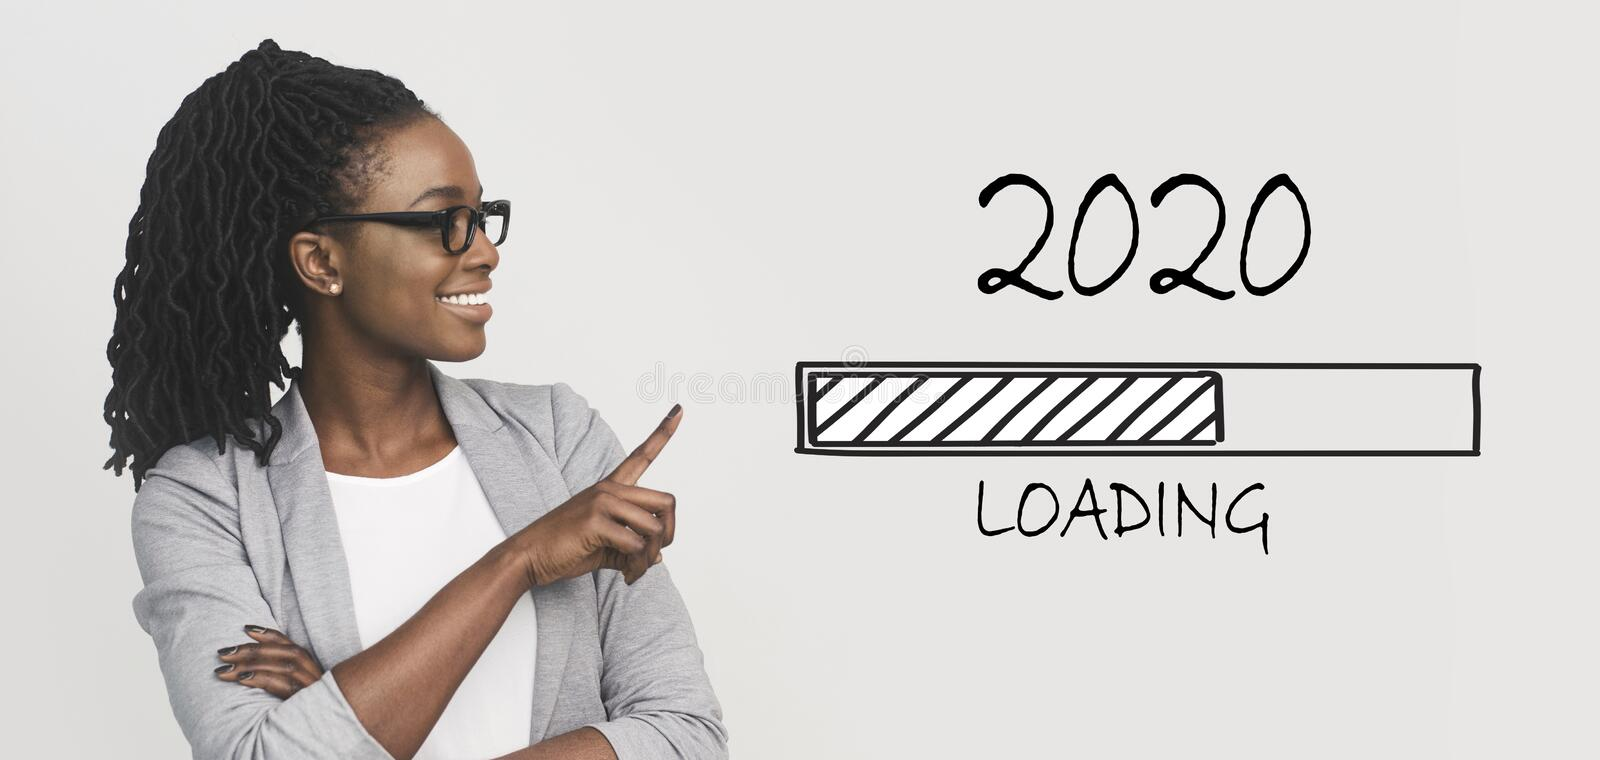 Positive african business woman pointing at 2020 loading bar. 2020 coming soon. Positive african business woman pointing at loading bar, panorama stock photography